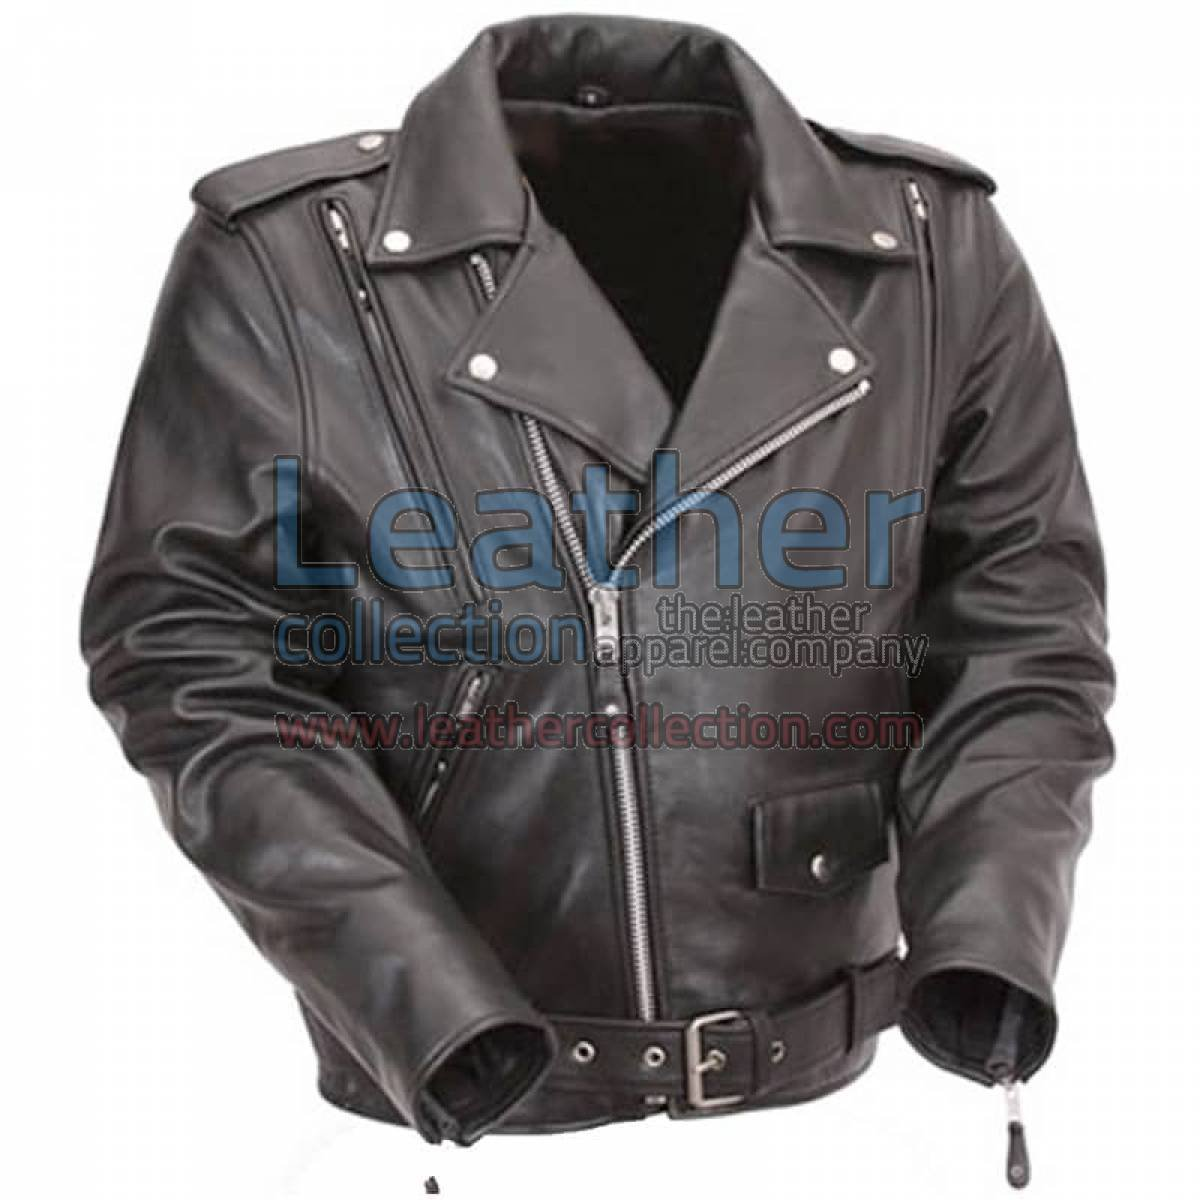 Black Leather Motorcycle Jacket with Exclusive Built-in Back Support